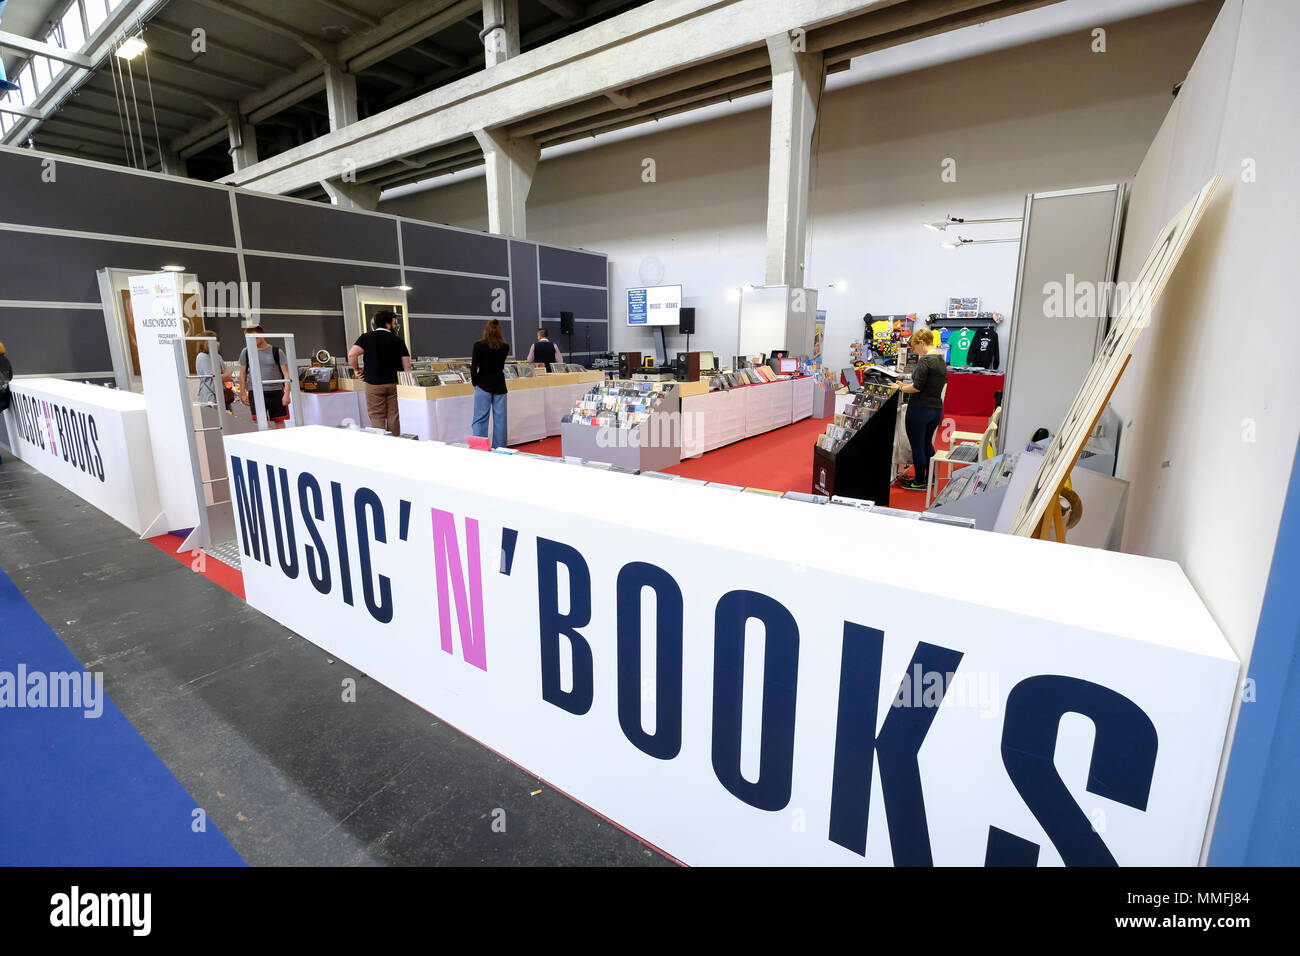 Turin, Piedmont, Italy, 10th May, 2018. International Book fair 2018,first day.Music'n' Books area Credit: RENATO VALTERZA/Alamy Live News - Stock Image